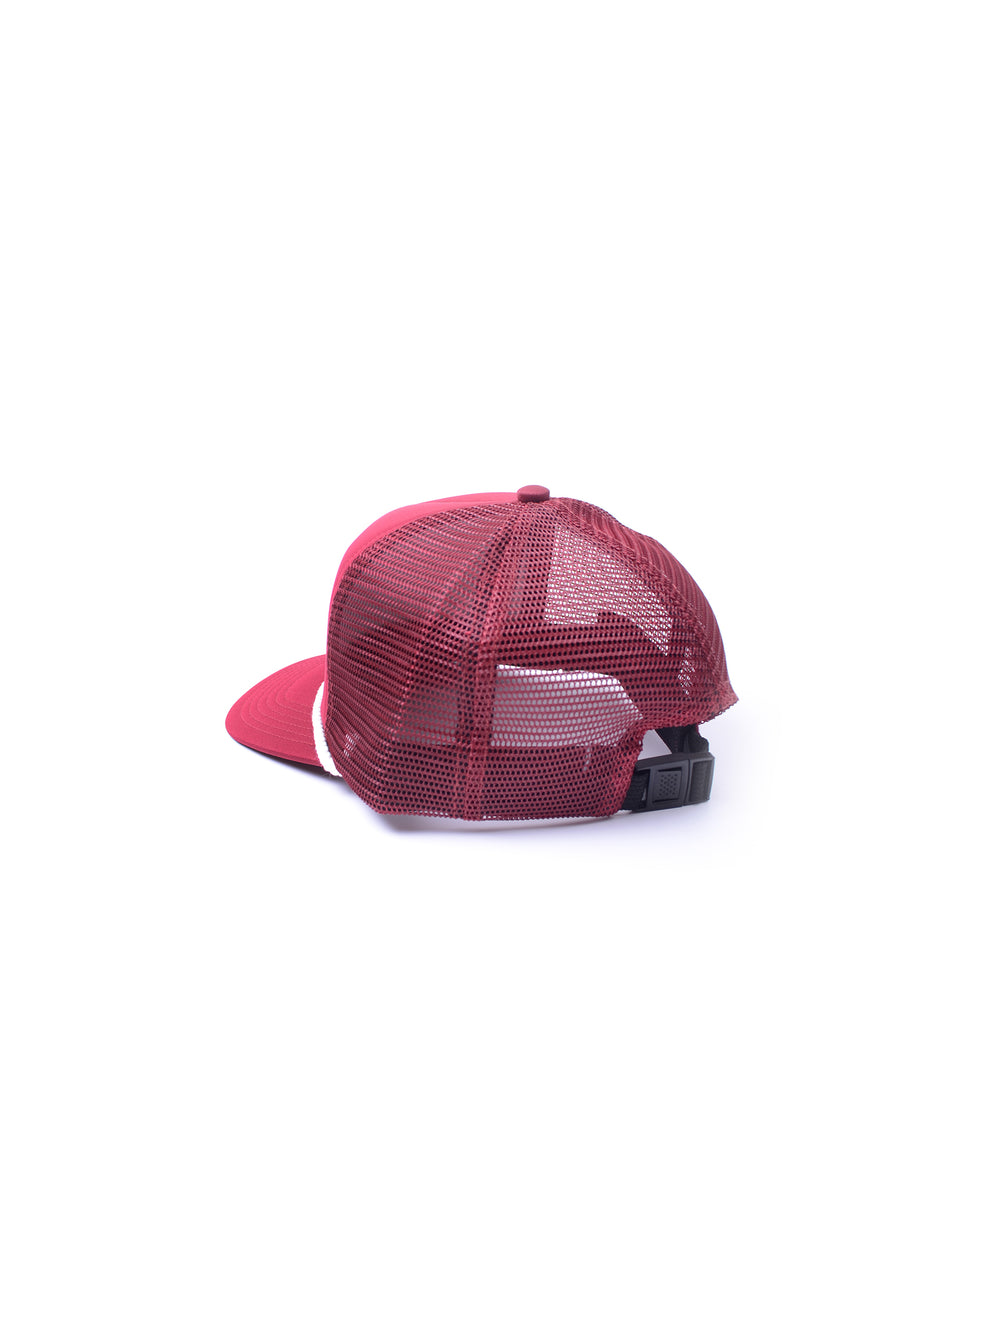 DEMOLITION SERVICES TRUCKER MAROON